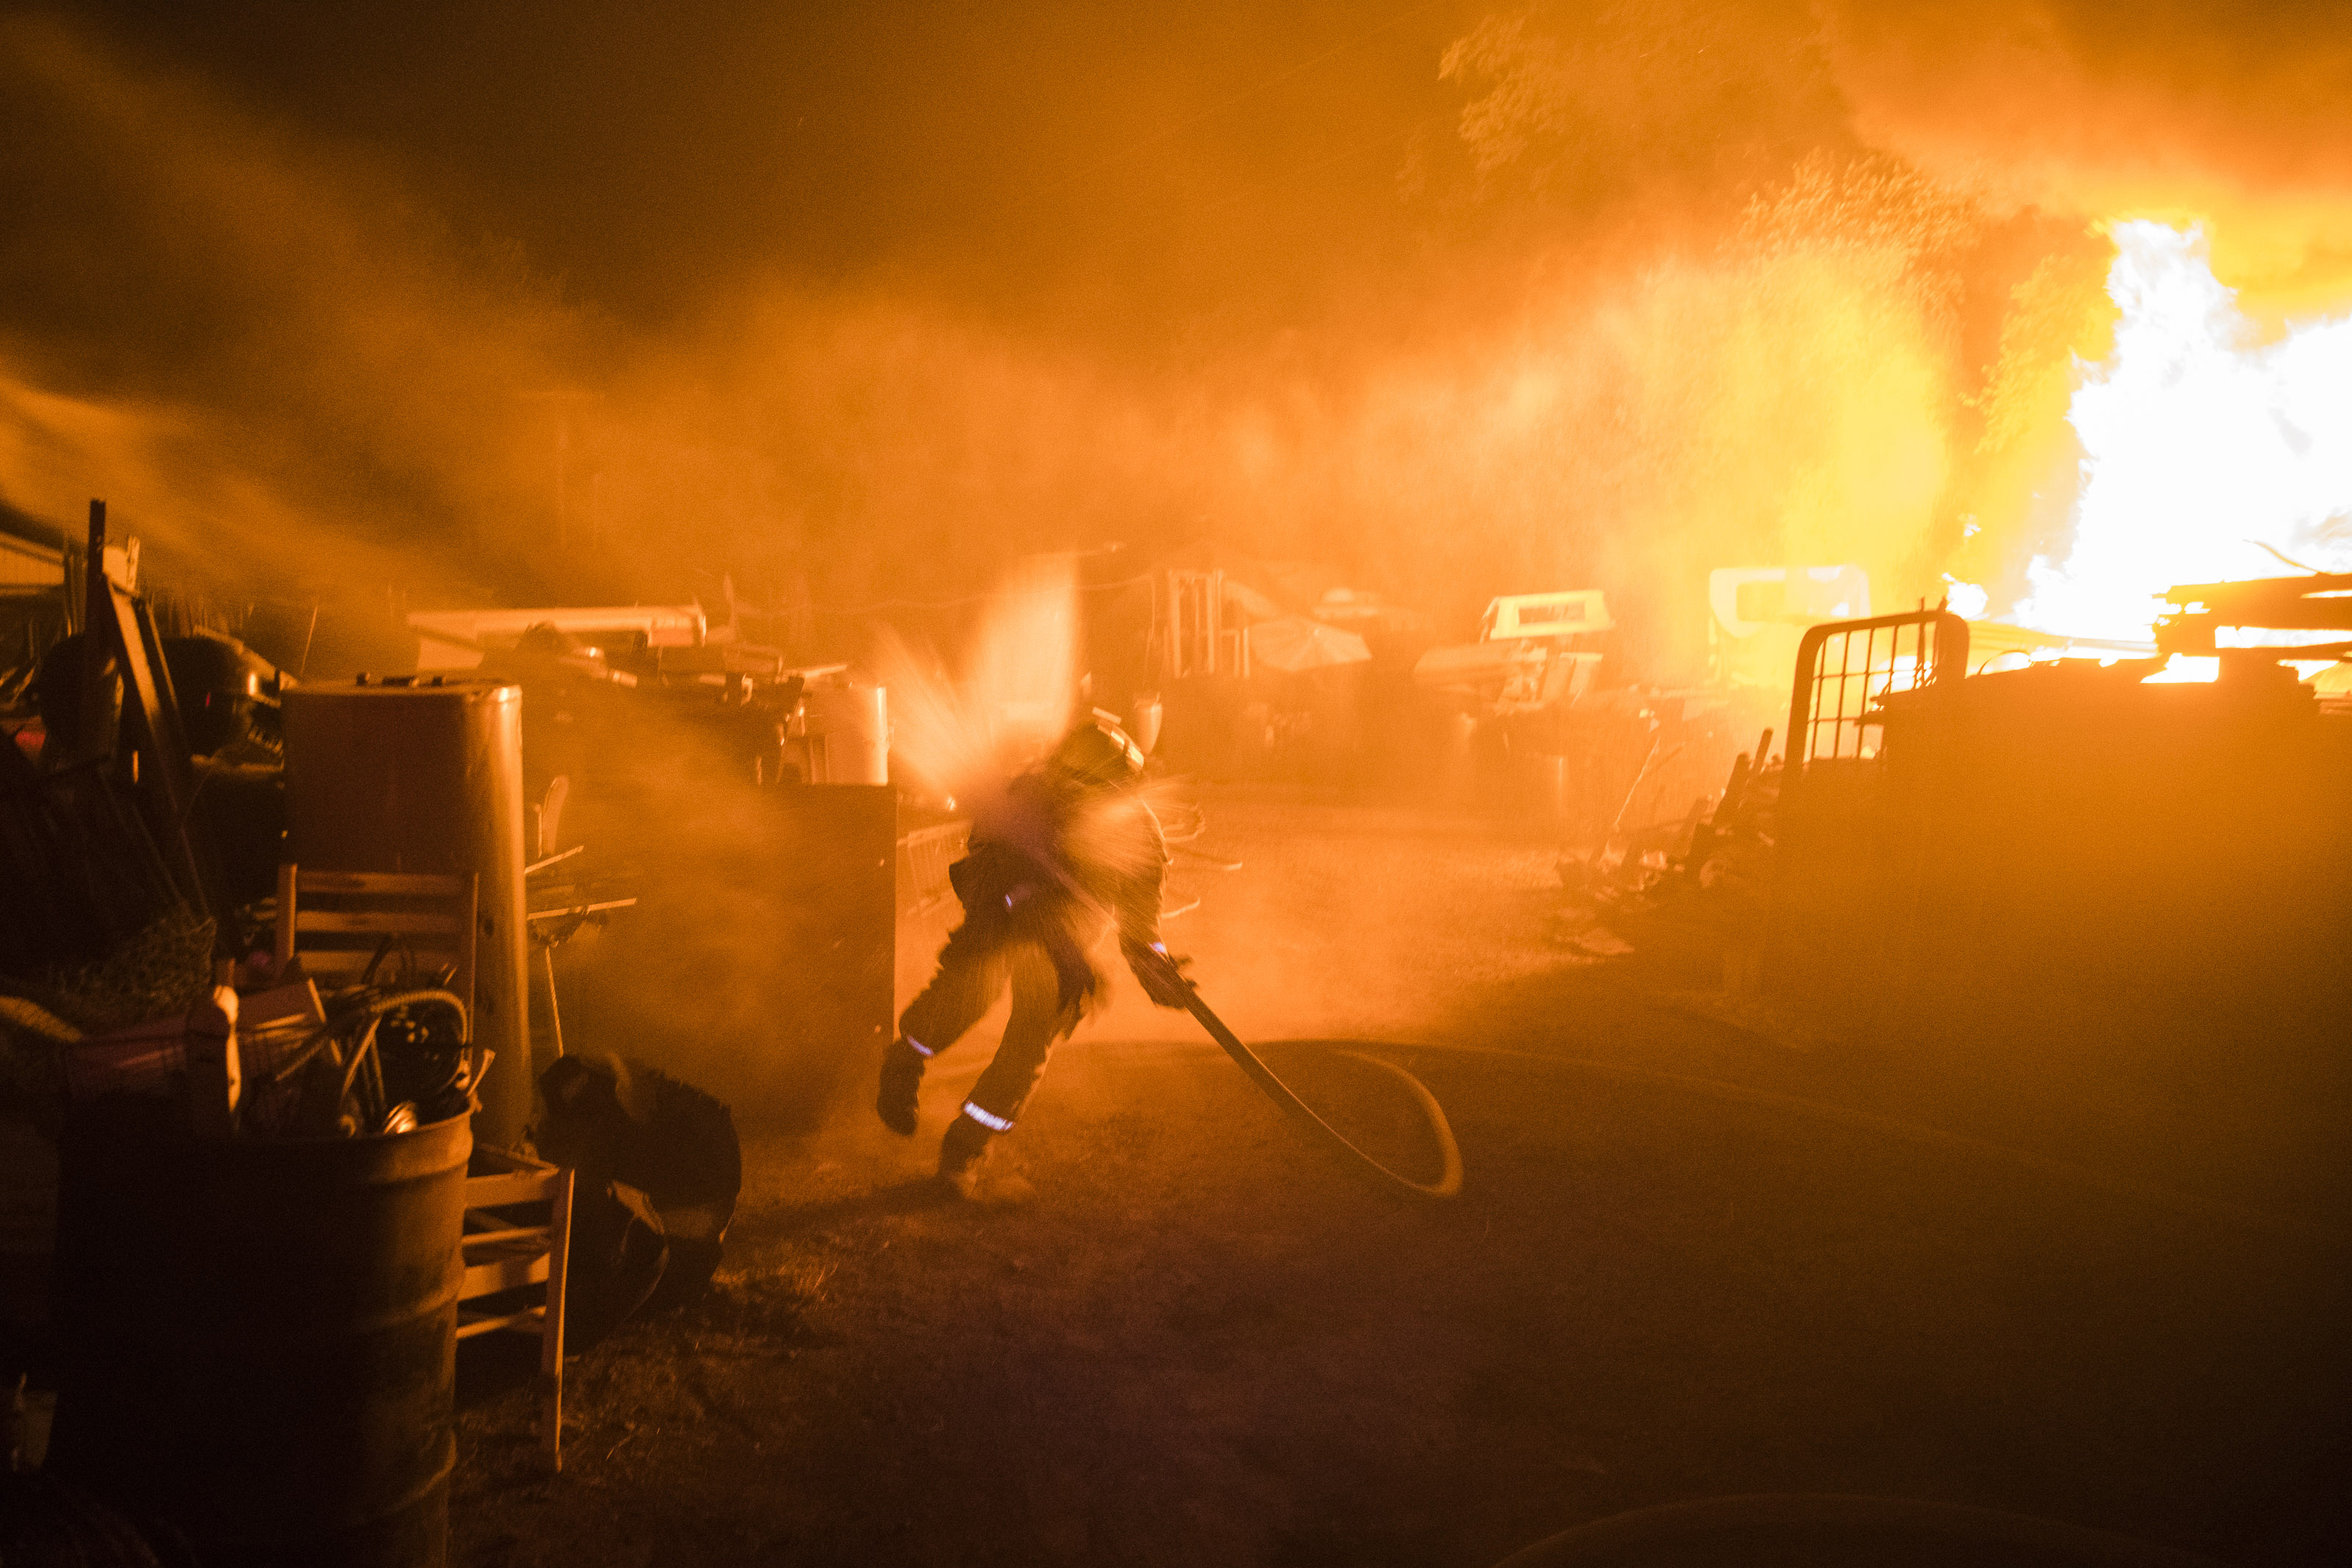 Maps of the Mendocino Complex Fire in California   Washington Post A Shasta County firefighter stumbles after water pressure to a fire hose is  turned on while fighting the River Fire west of Lakeport  Calif   on July  31